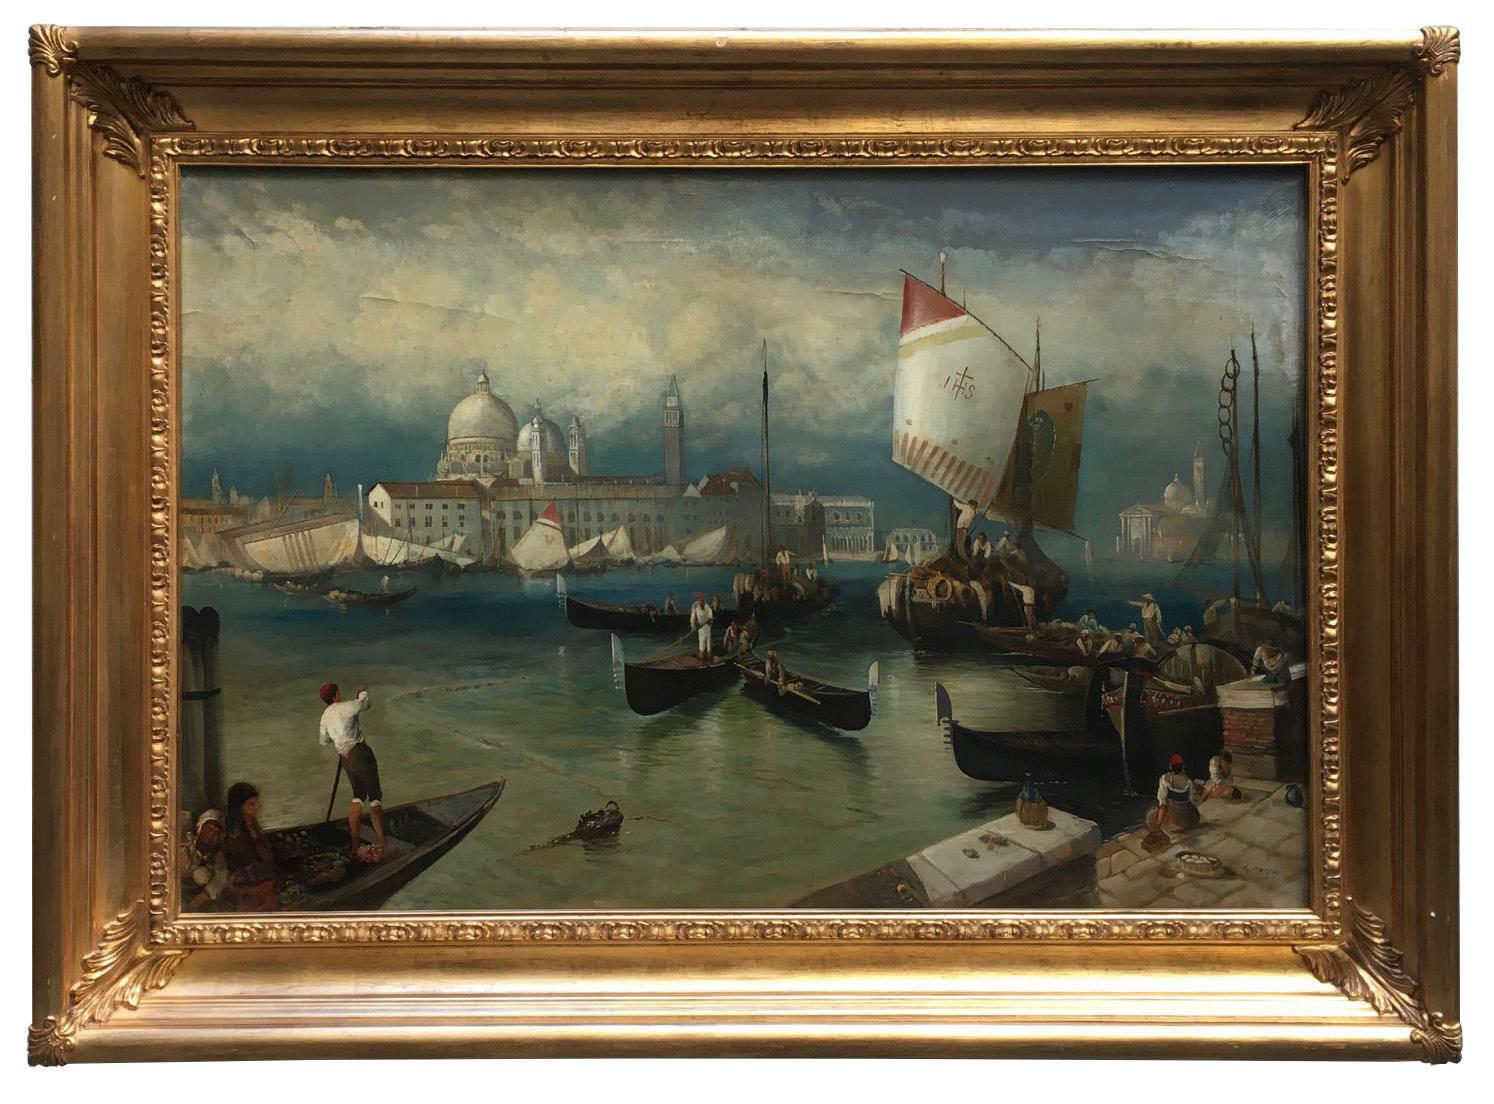 VENICE- In the Manner of Canaletto - Oil On Canvas Italian Landscape Painting